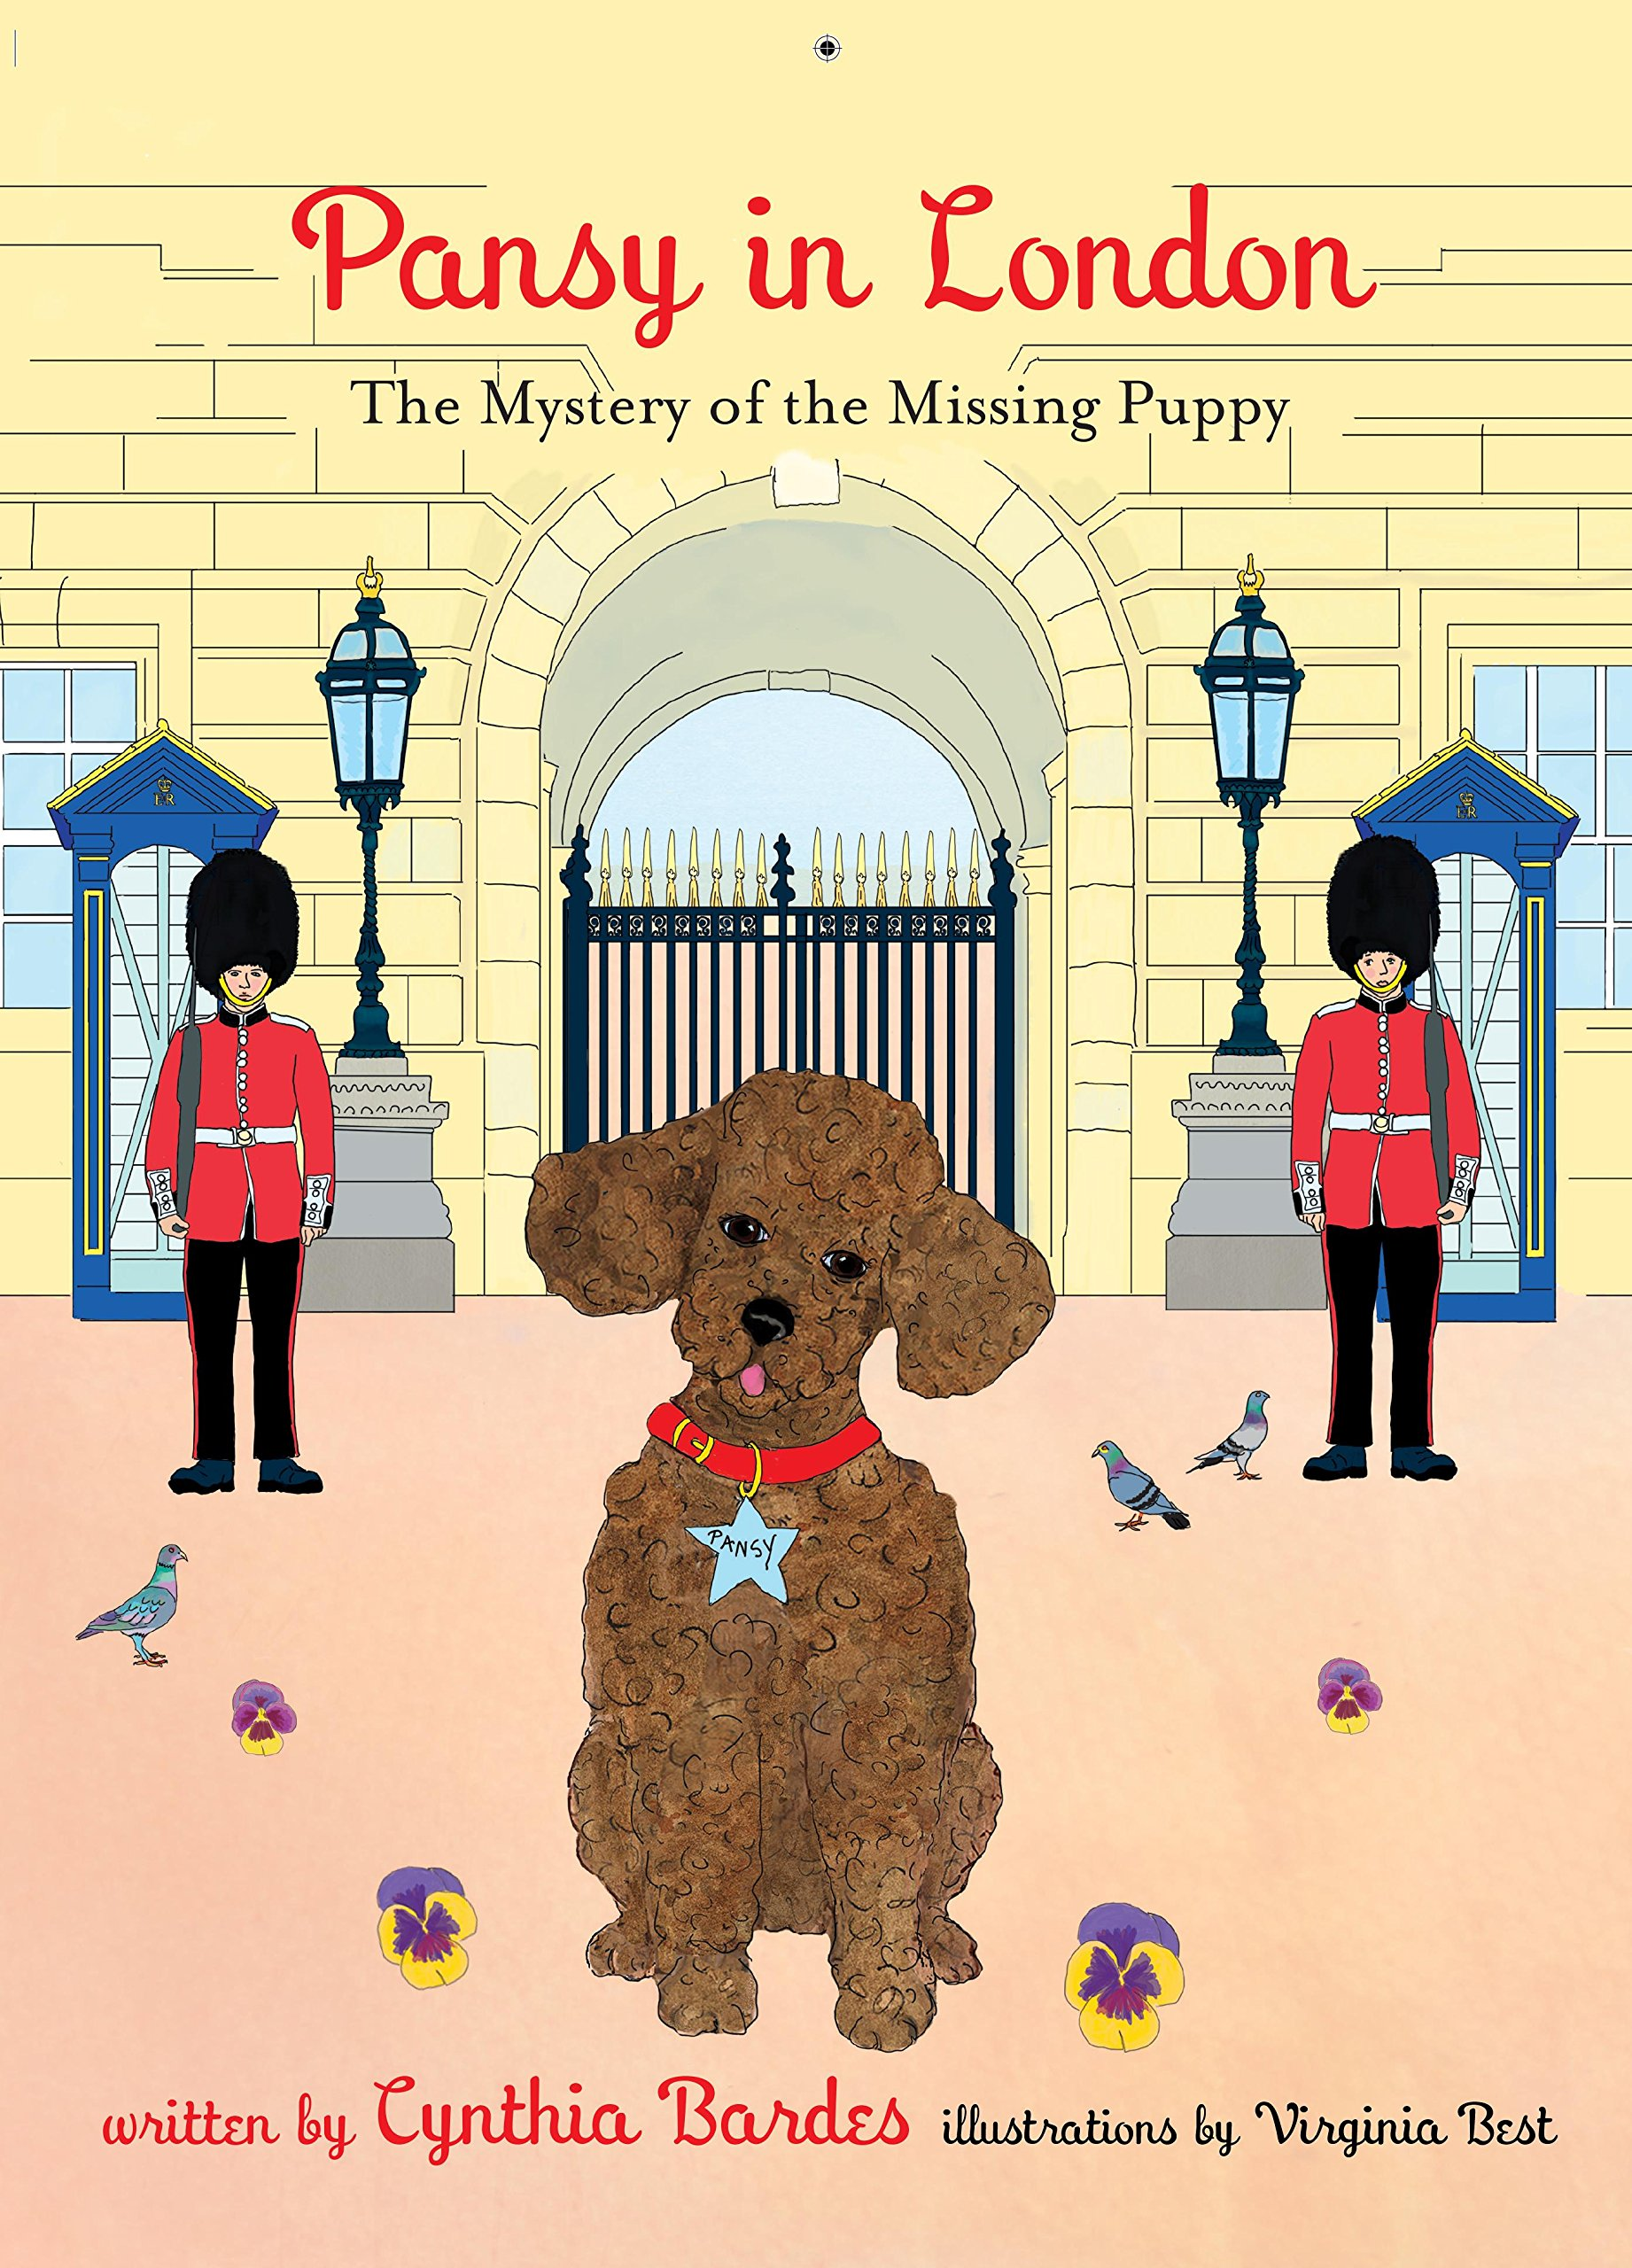 Pansy in London: The Mystery of the Missing Puppy